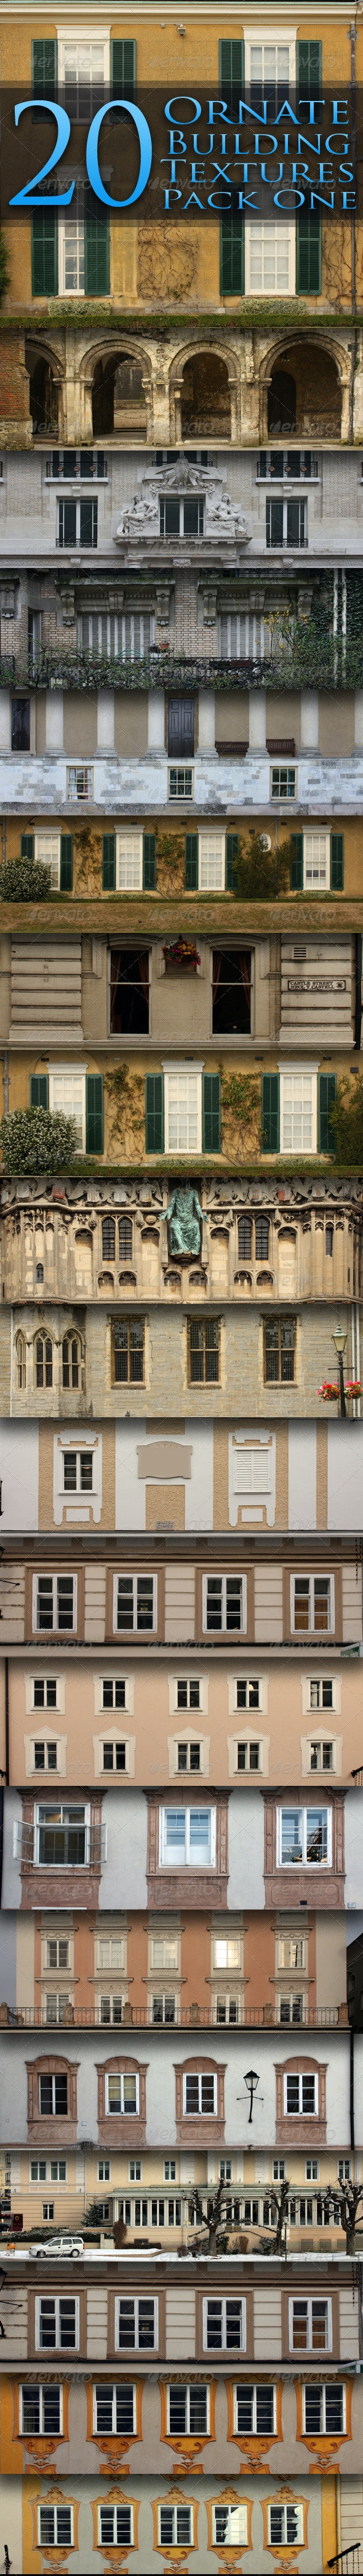 20 Ornate Building Facade Textures - Pack One - Miscellaneous Textures